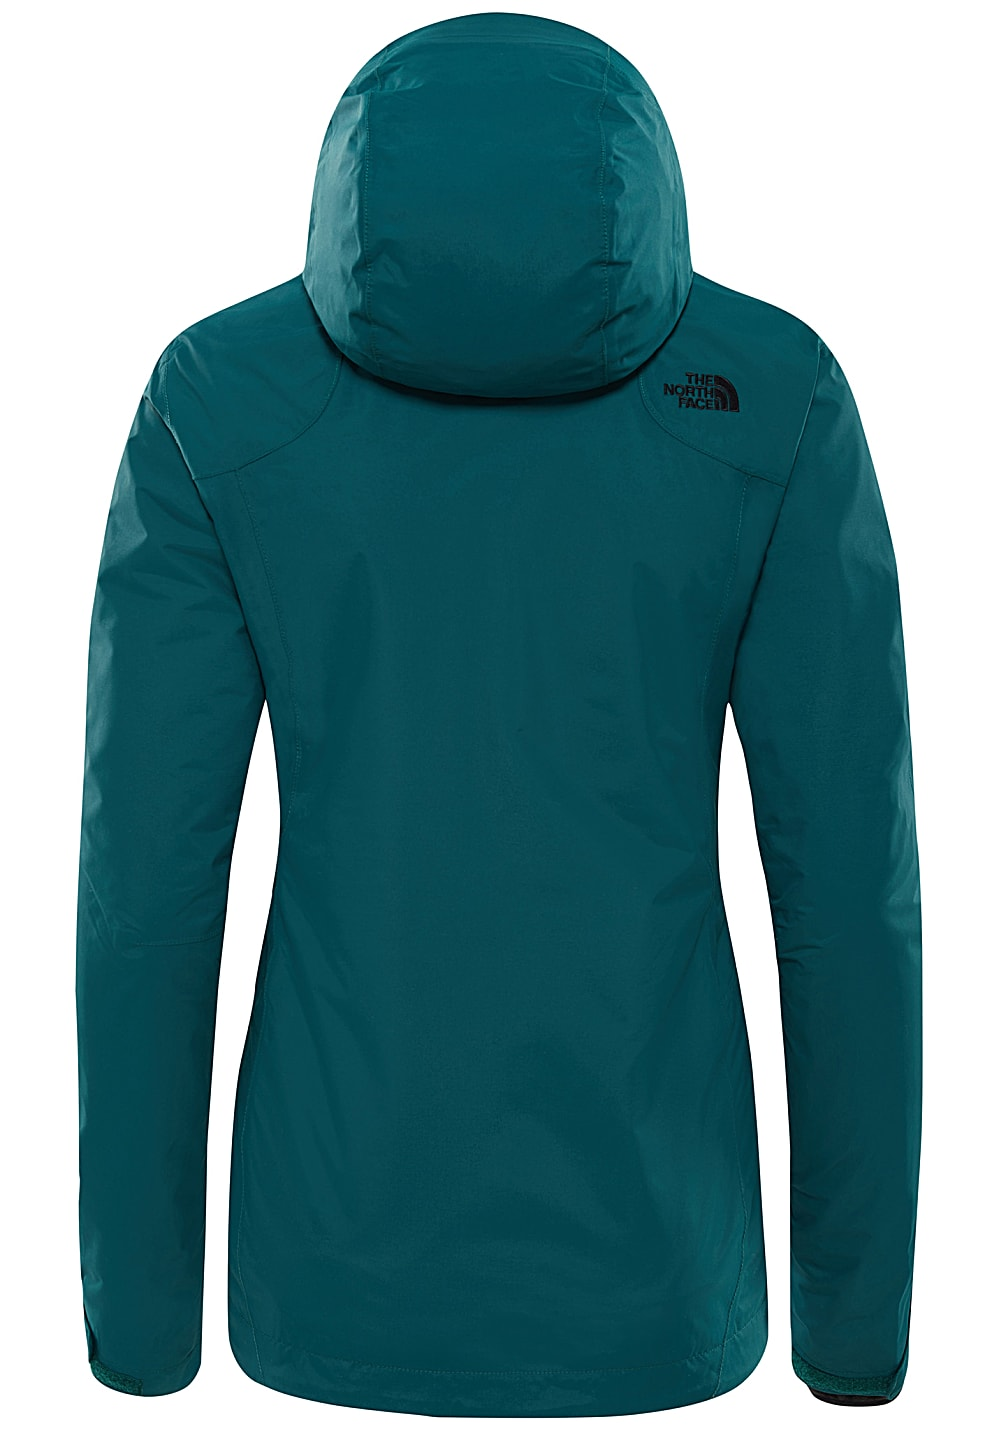 the best attitude e5667 94f2b THE NORTH FACE Evolution II Triclimate - Functional Jacket for Women - Green